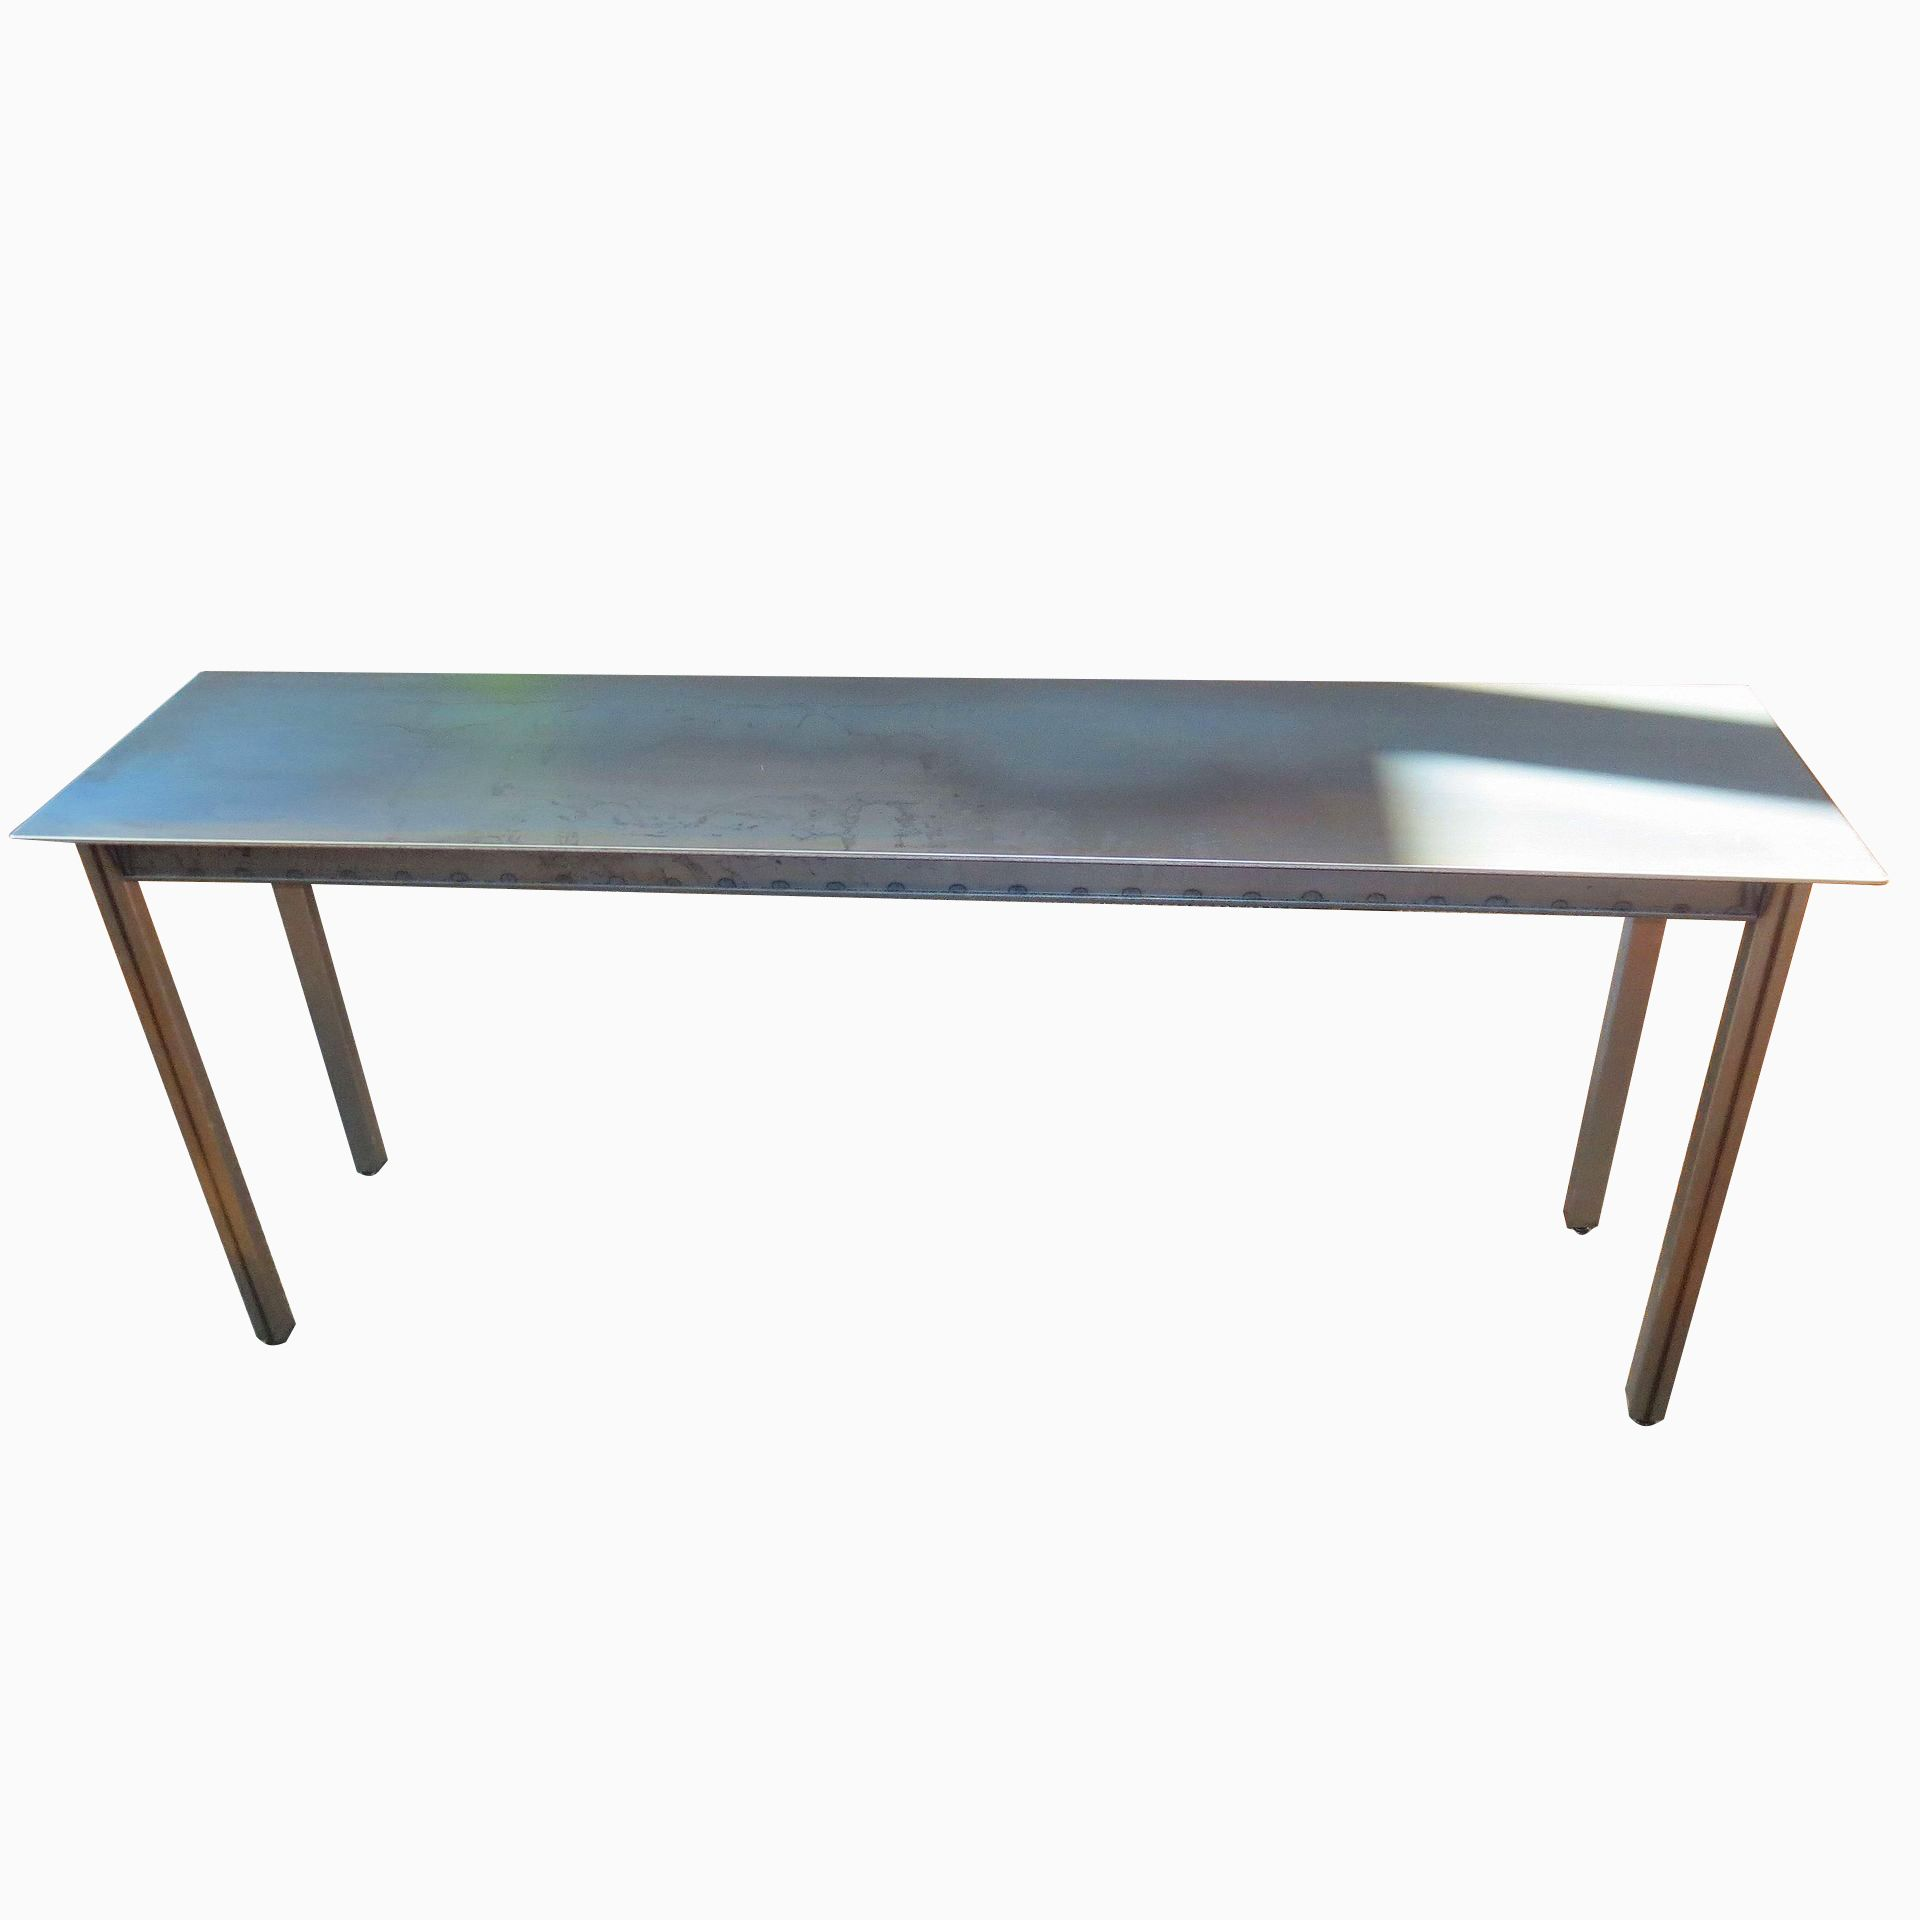 hand made simple steel dining table console industrial by andrew